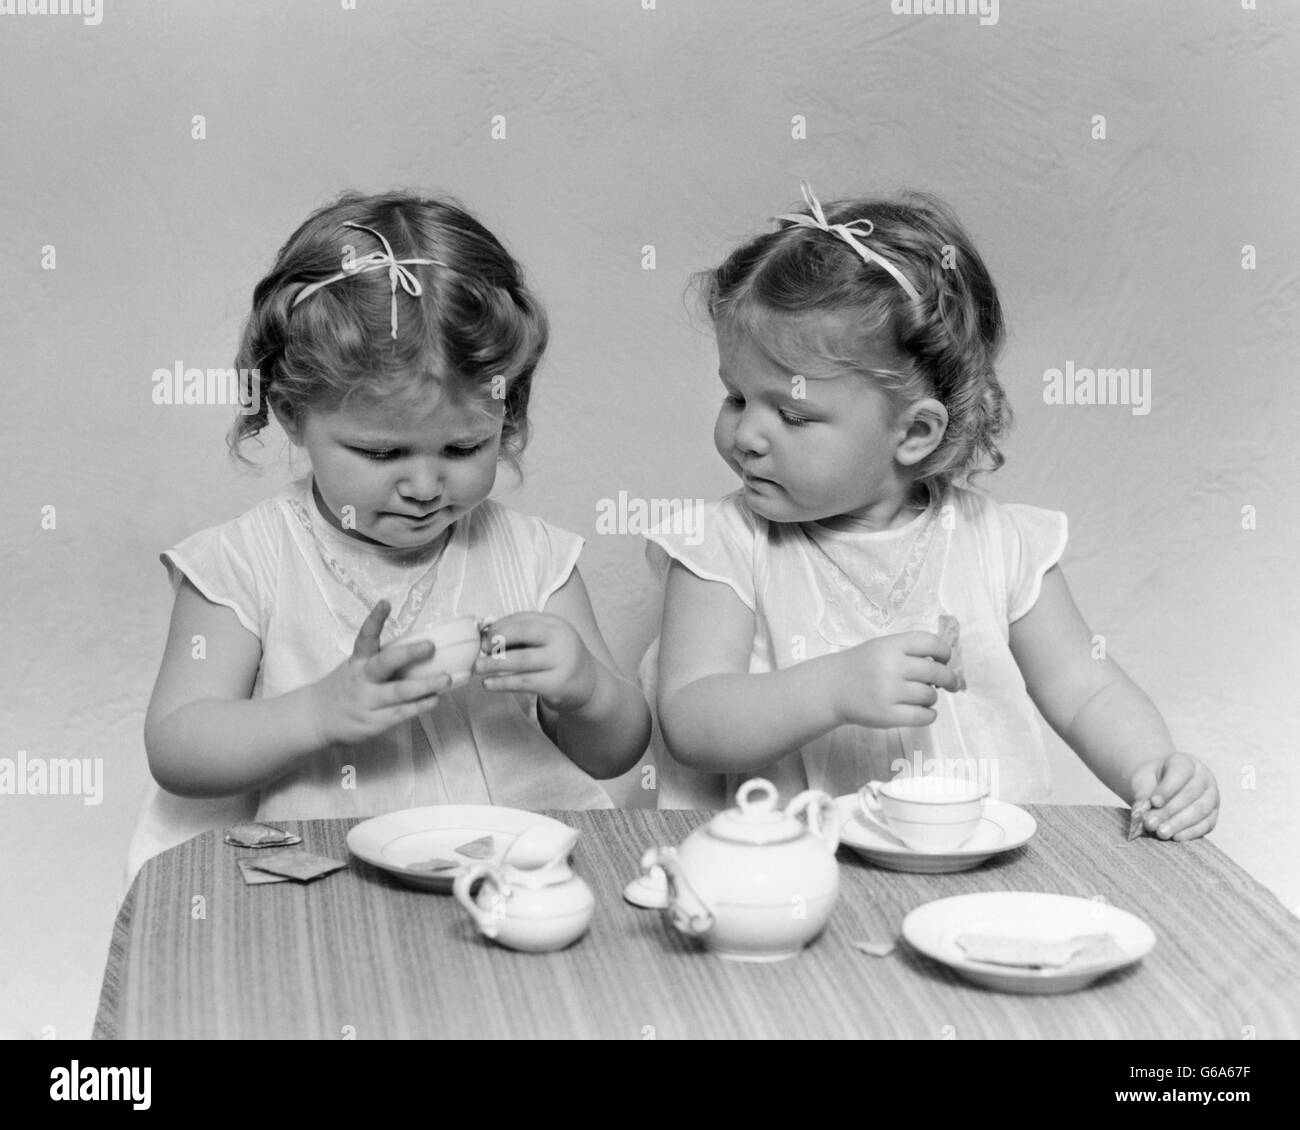 1930s 1940s TWIN GIRLS HAVING TEA PARTY TOY DISHES CUPS TABLE - Stock Image